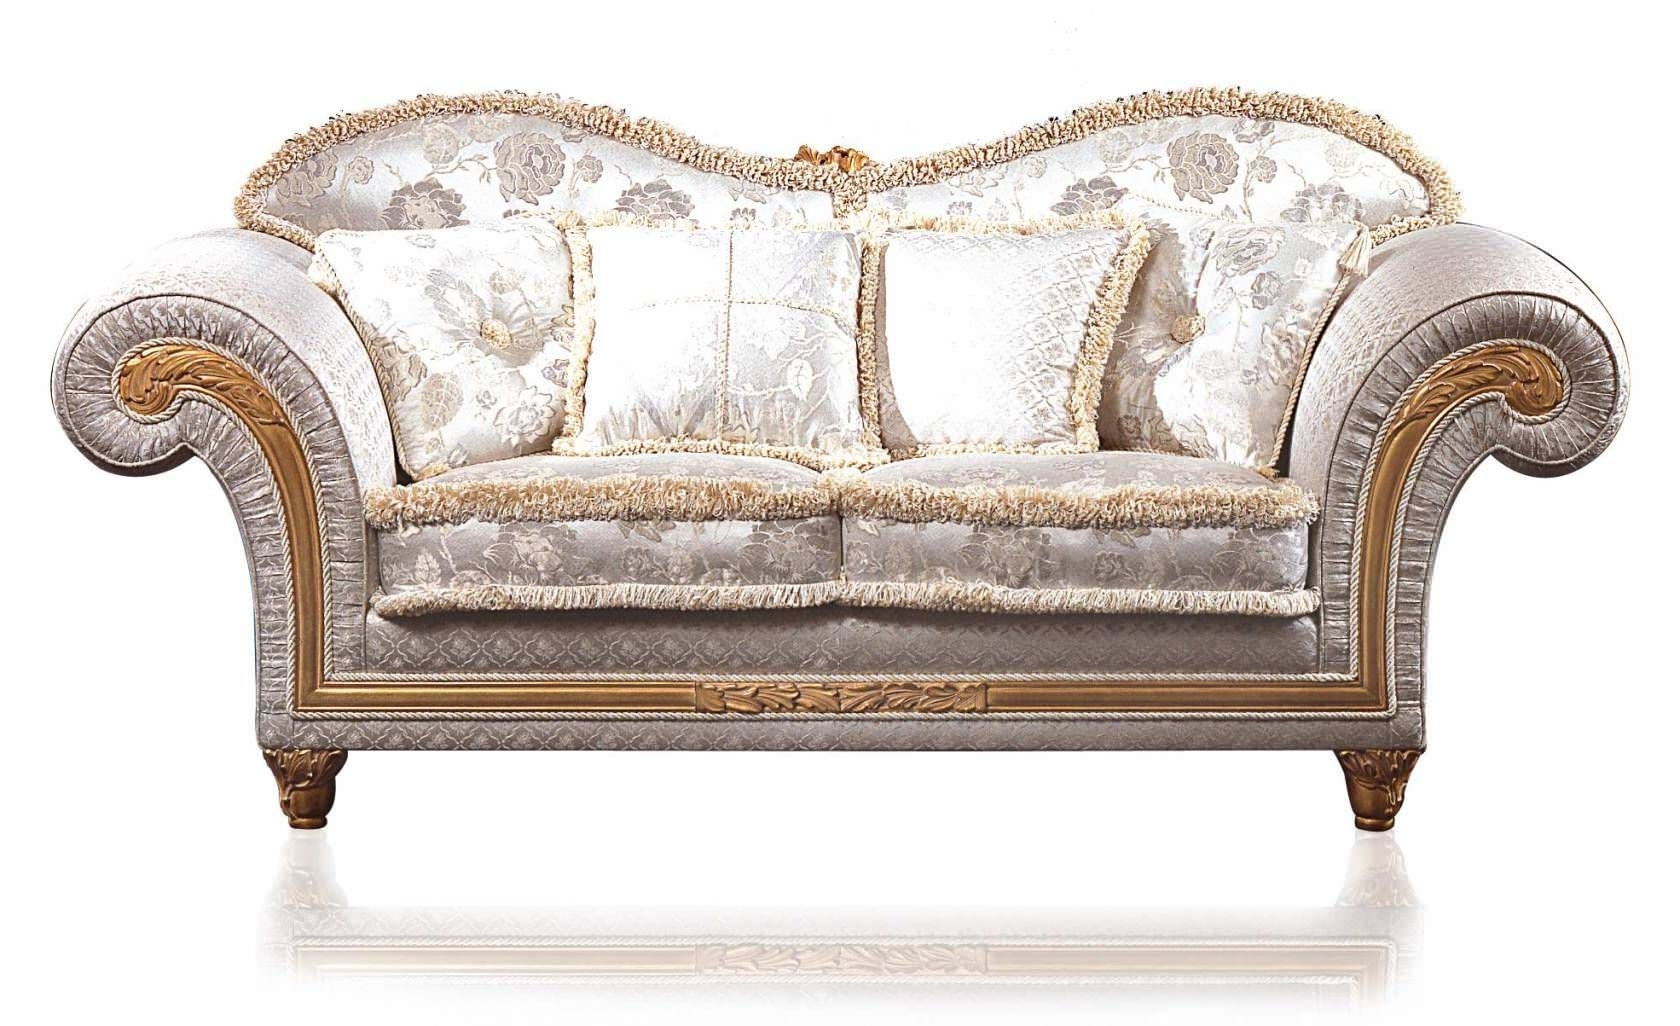 Sofa Design: Marseille Couches Classic Sofas Coming Stunning Range Inside Fashionable Retro Sofas (View 19 of 20)